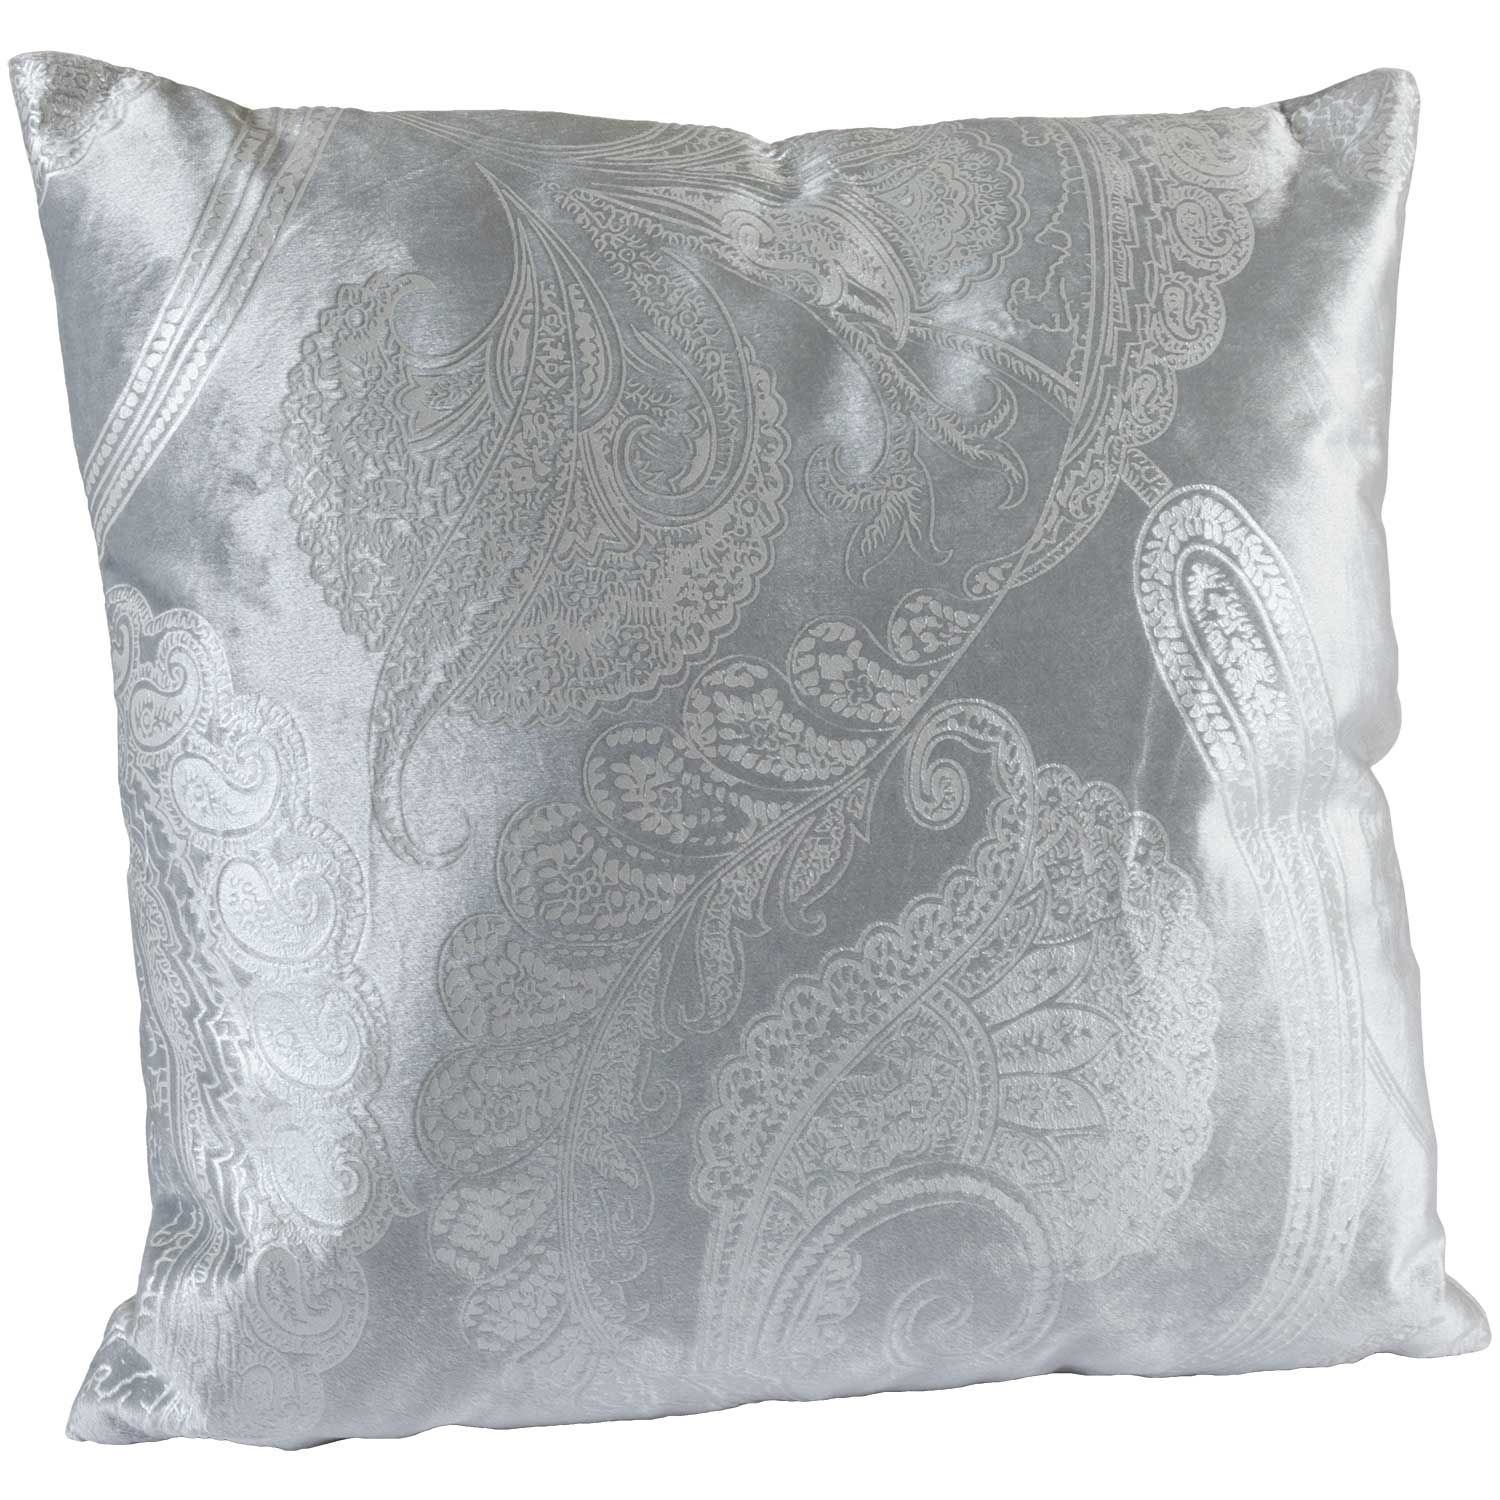 Picture of Snow Paisley 18x18 Decorative Pillow